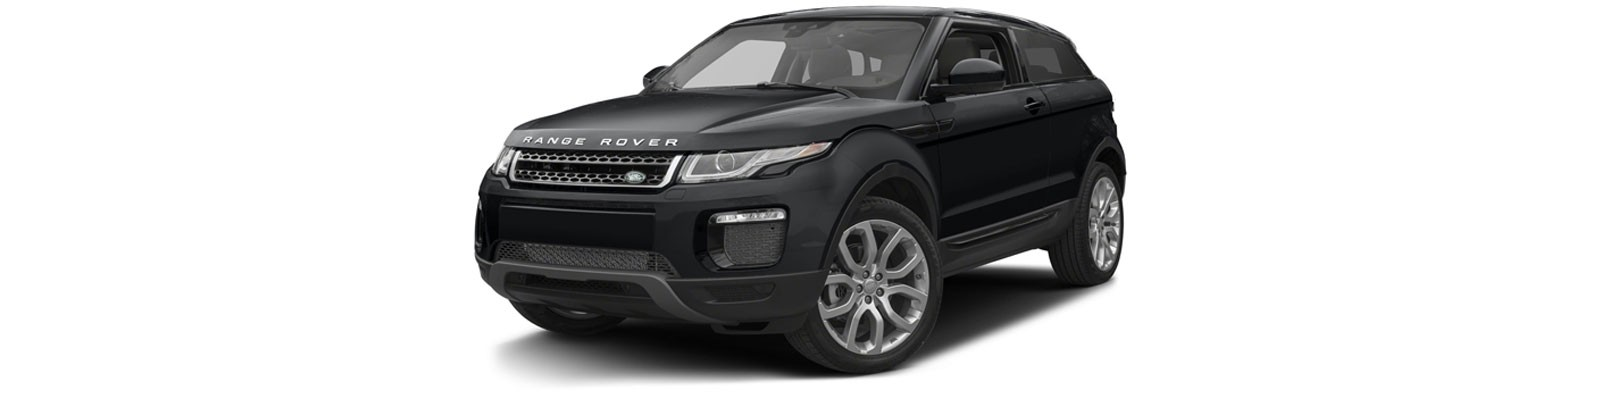 land rover range rover evoque accessories 2016 on 4x4. Black Bedroom Furniture Sets. Home Design Ideas